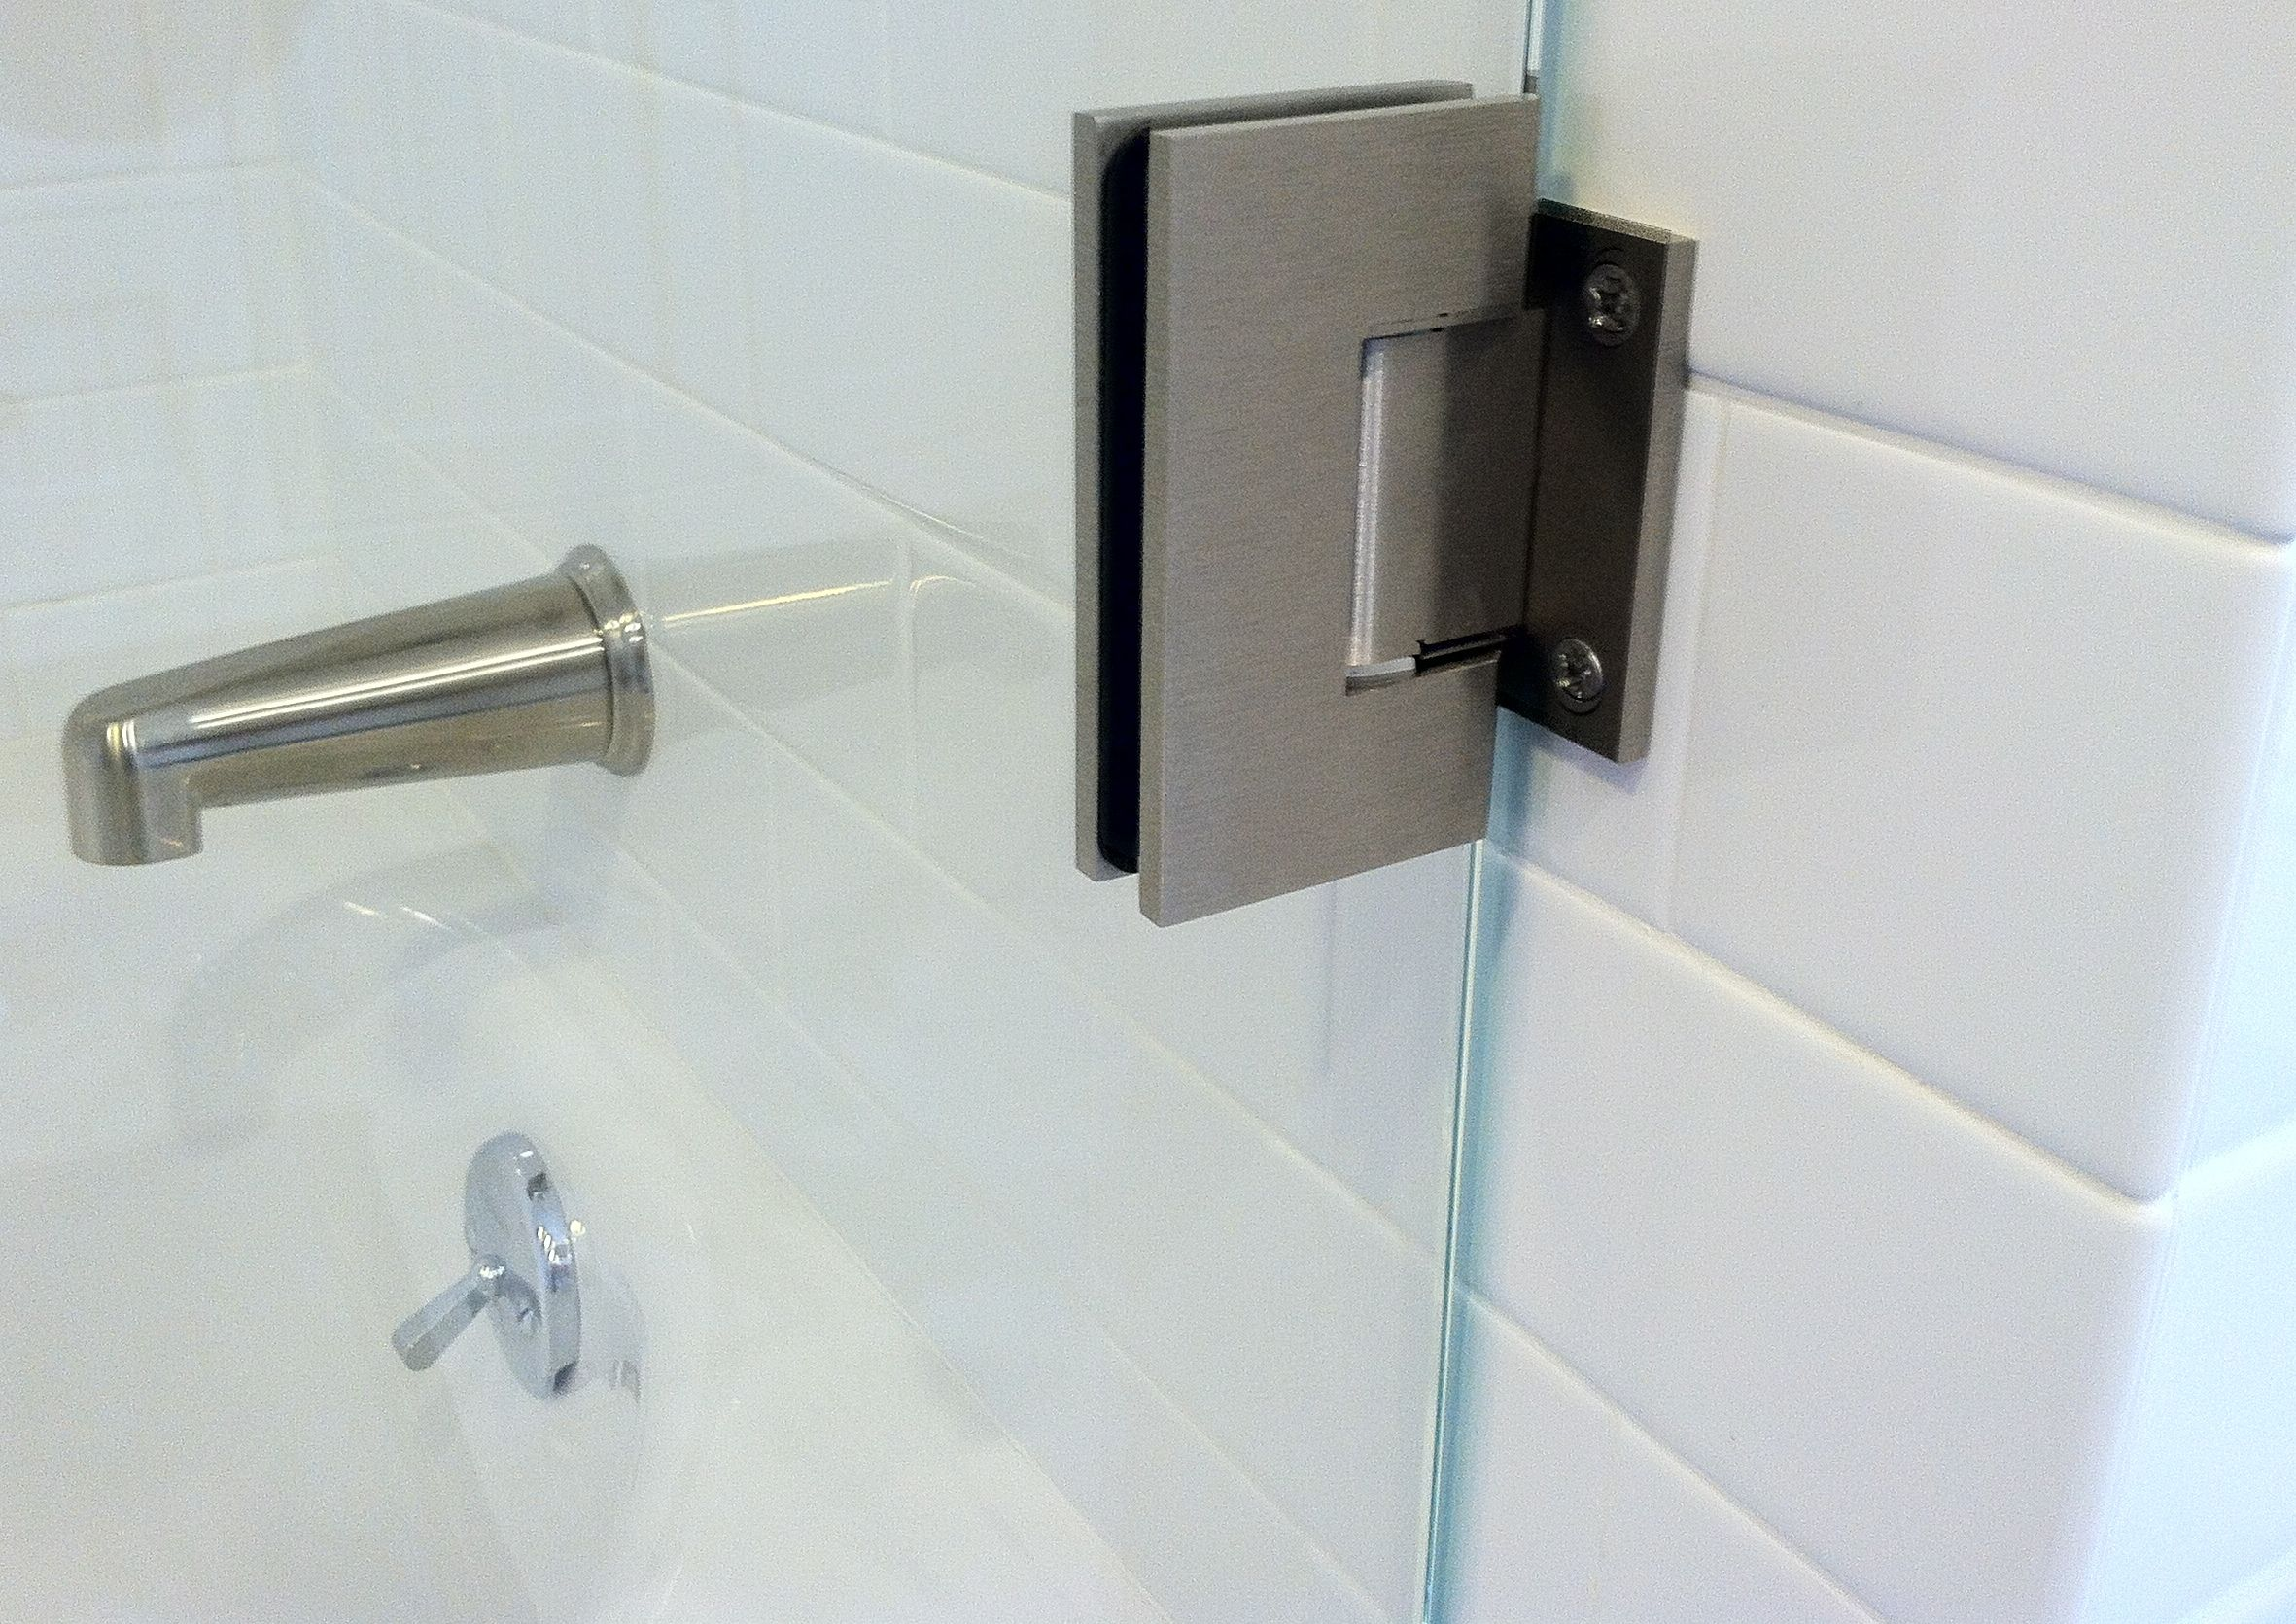 Glass To Wall Hinges Are Attached To This Tile Wall For A